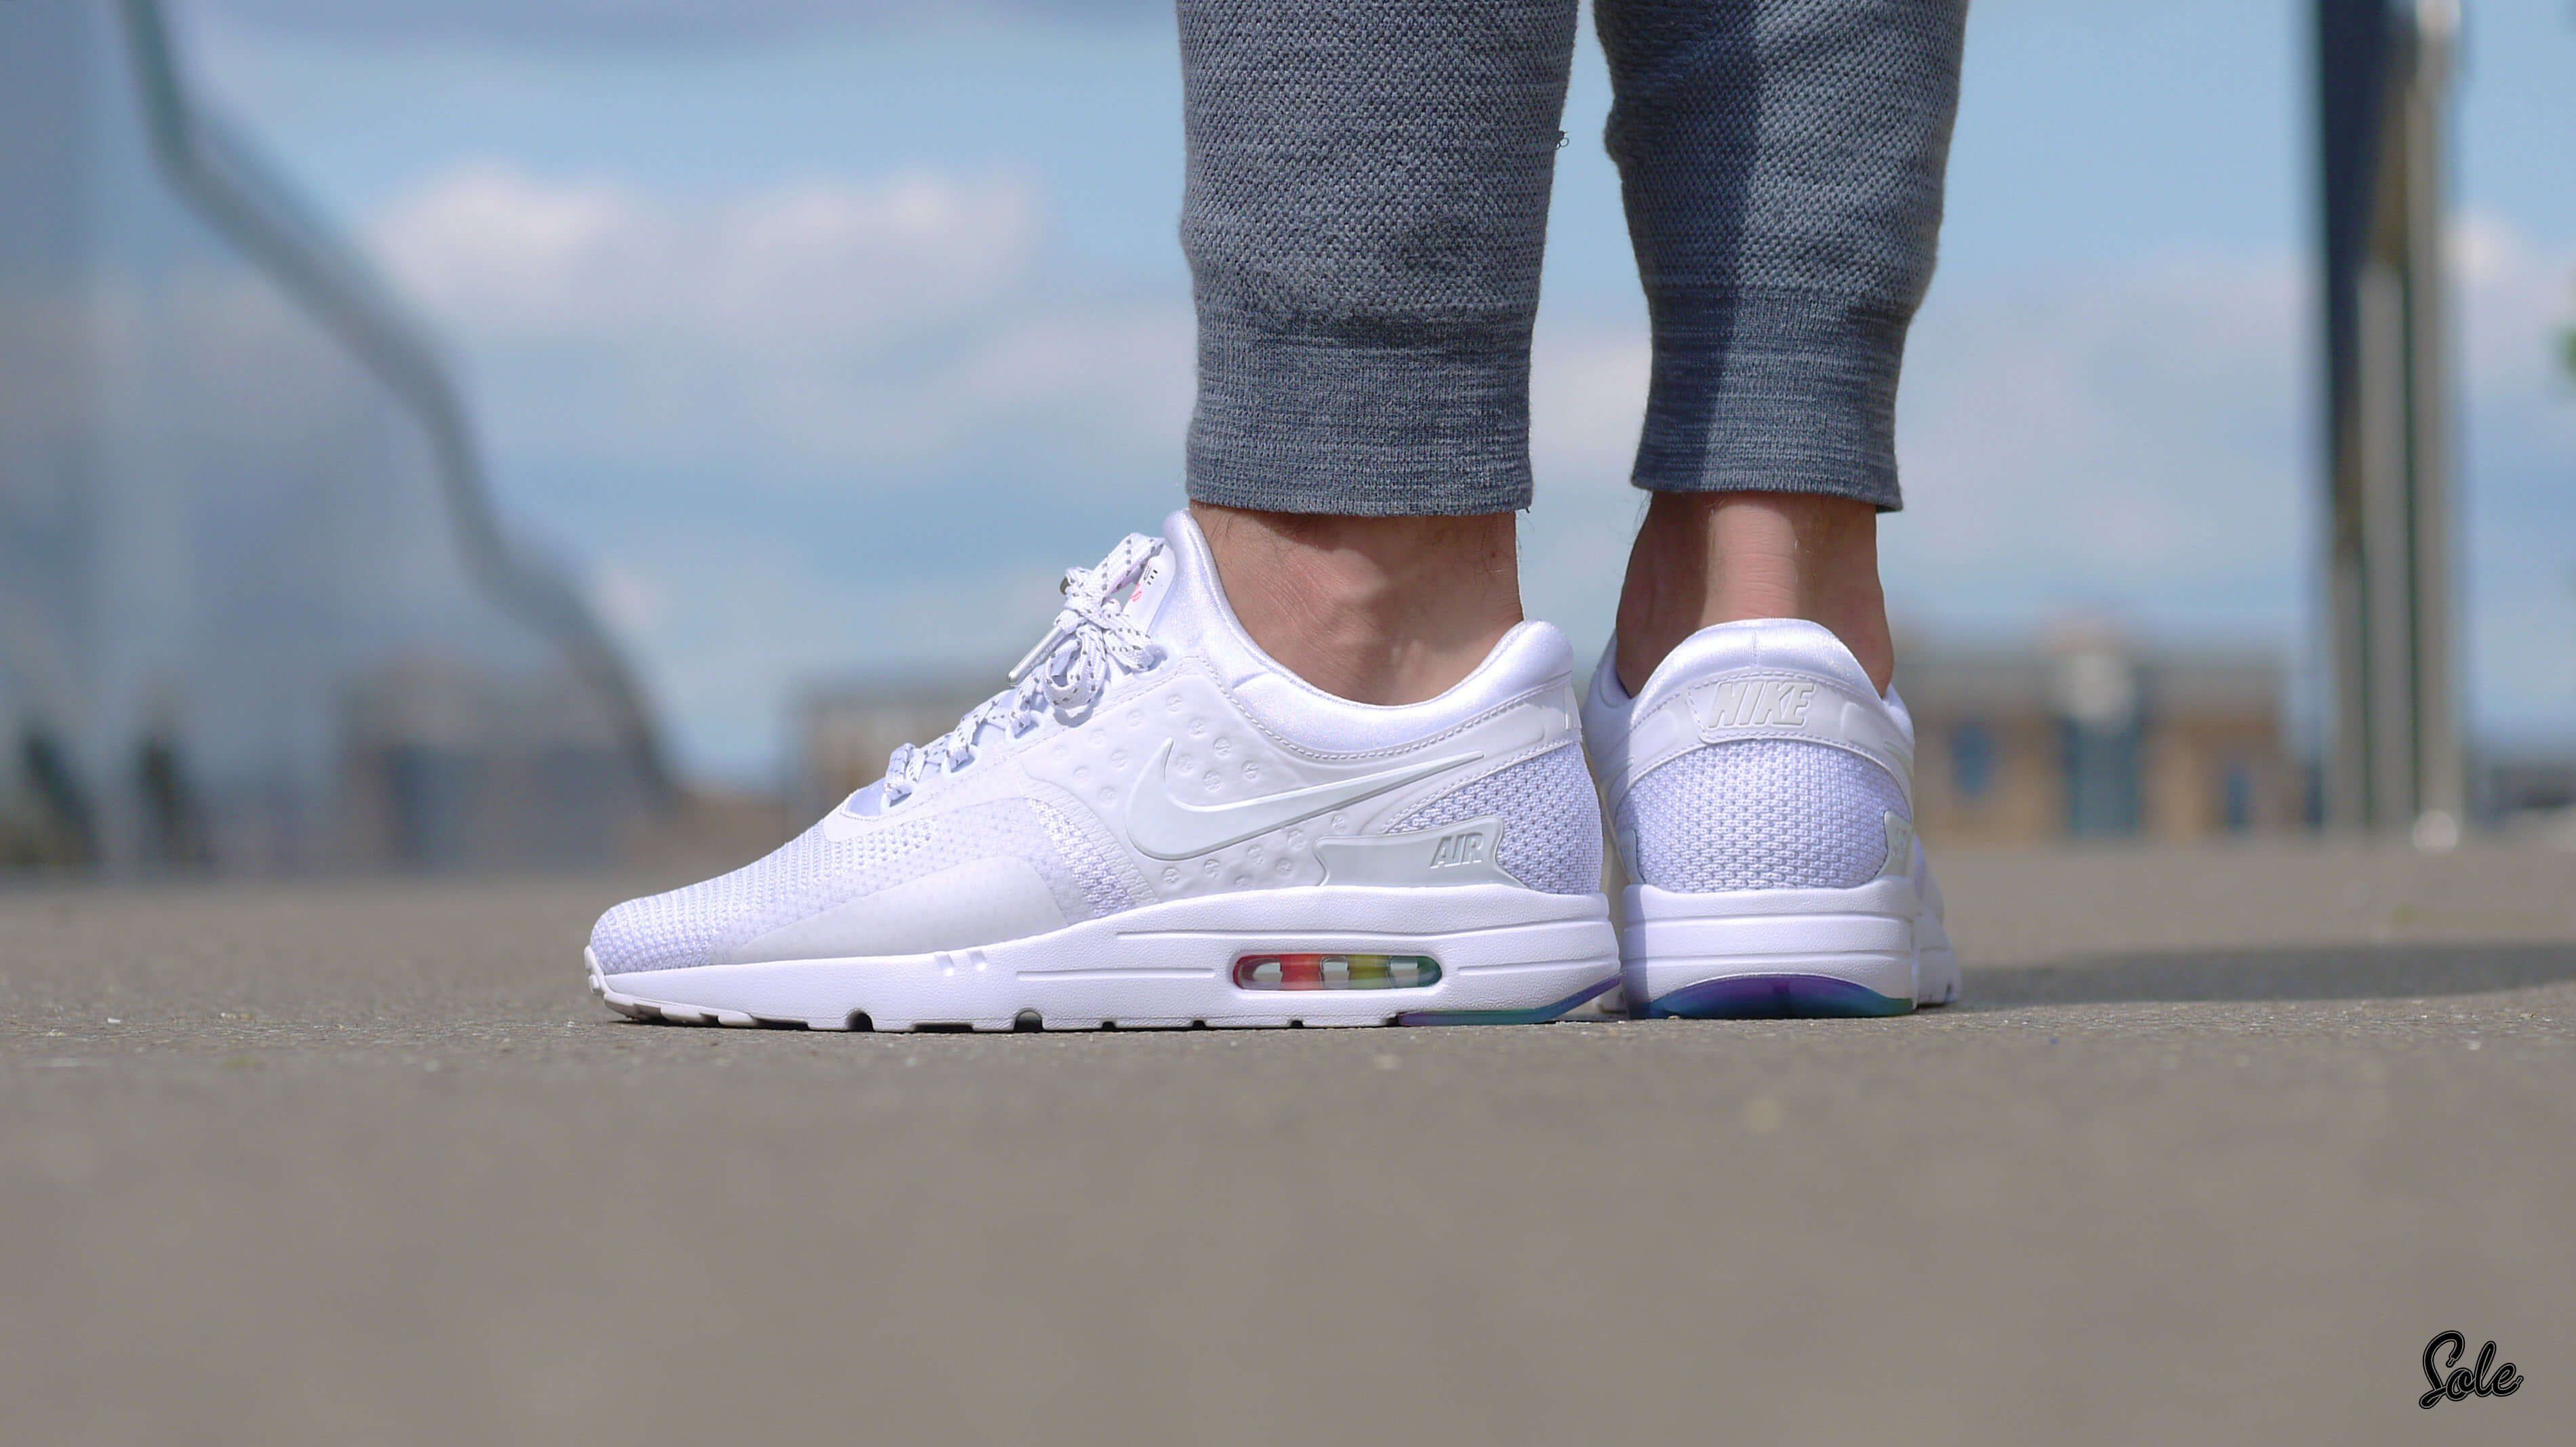 detailed look d1ffe 82c8a The super popular Nike Air Max Zero, learn how to spot fakes with this 27  point step-by-step guide from goVerify.it